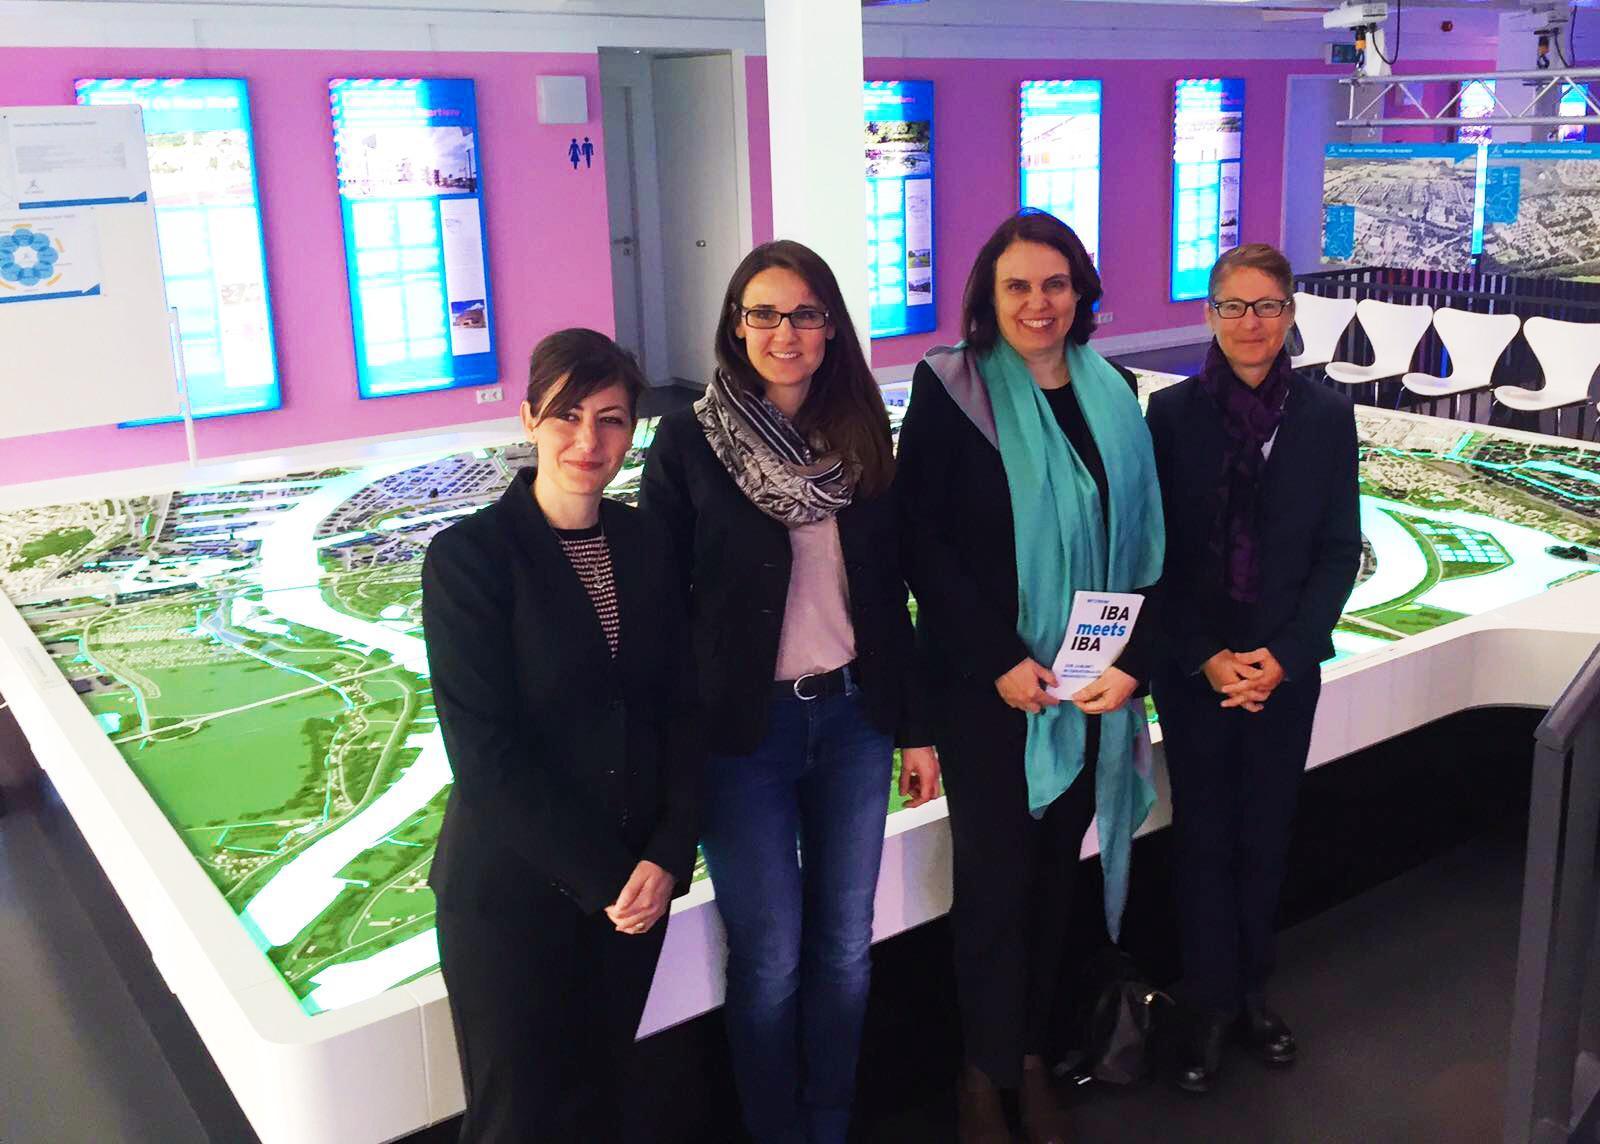 Monica Linder-Guarnaccia (IBA Basel Managing Director), Karen Pein (Managing Director IBA Hamburg), President of Cantonal Government Elisabeth Ackermann and Sabine Horvath (Head of External Affairs and Marketing Basel), at the IBA-Dock 2017 in Hamburg.